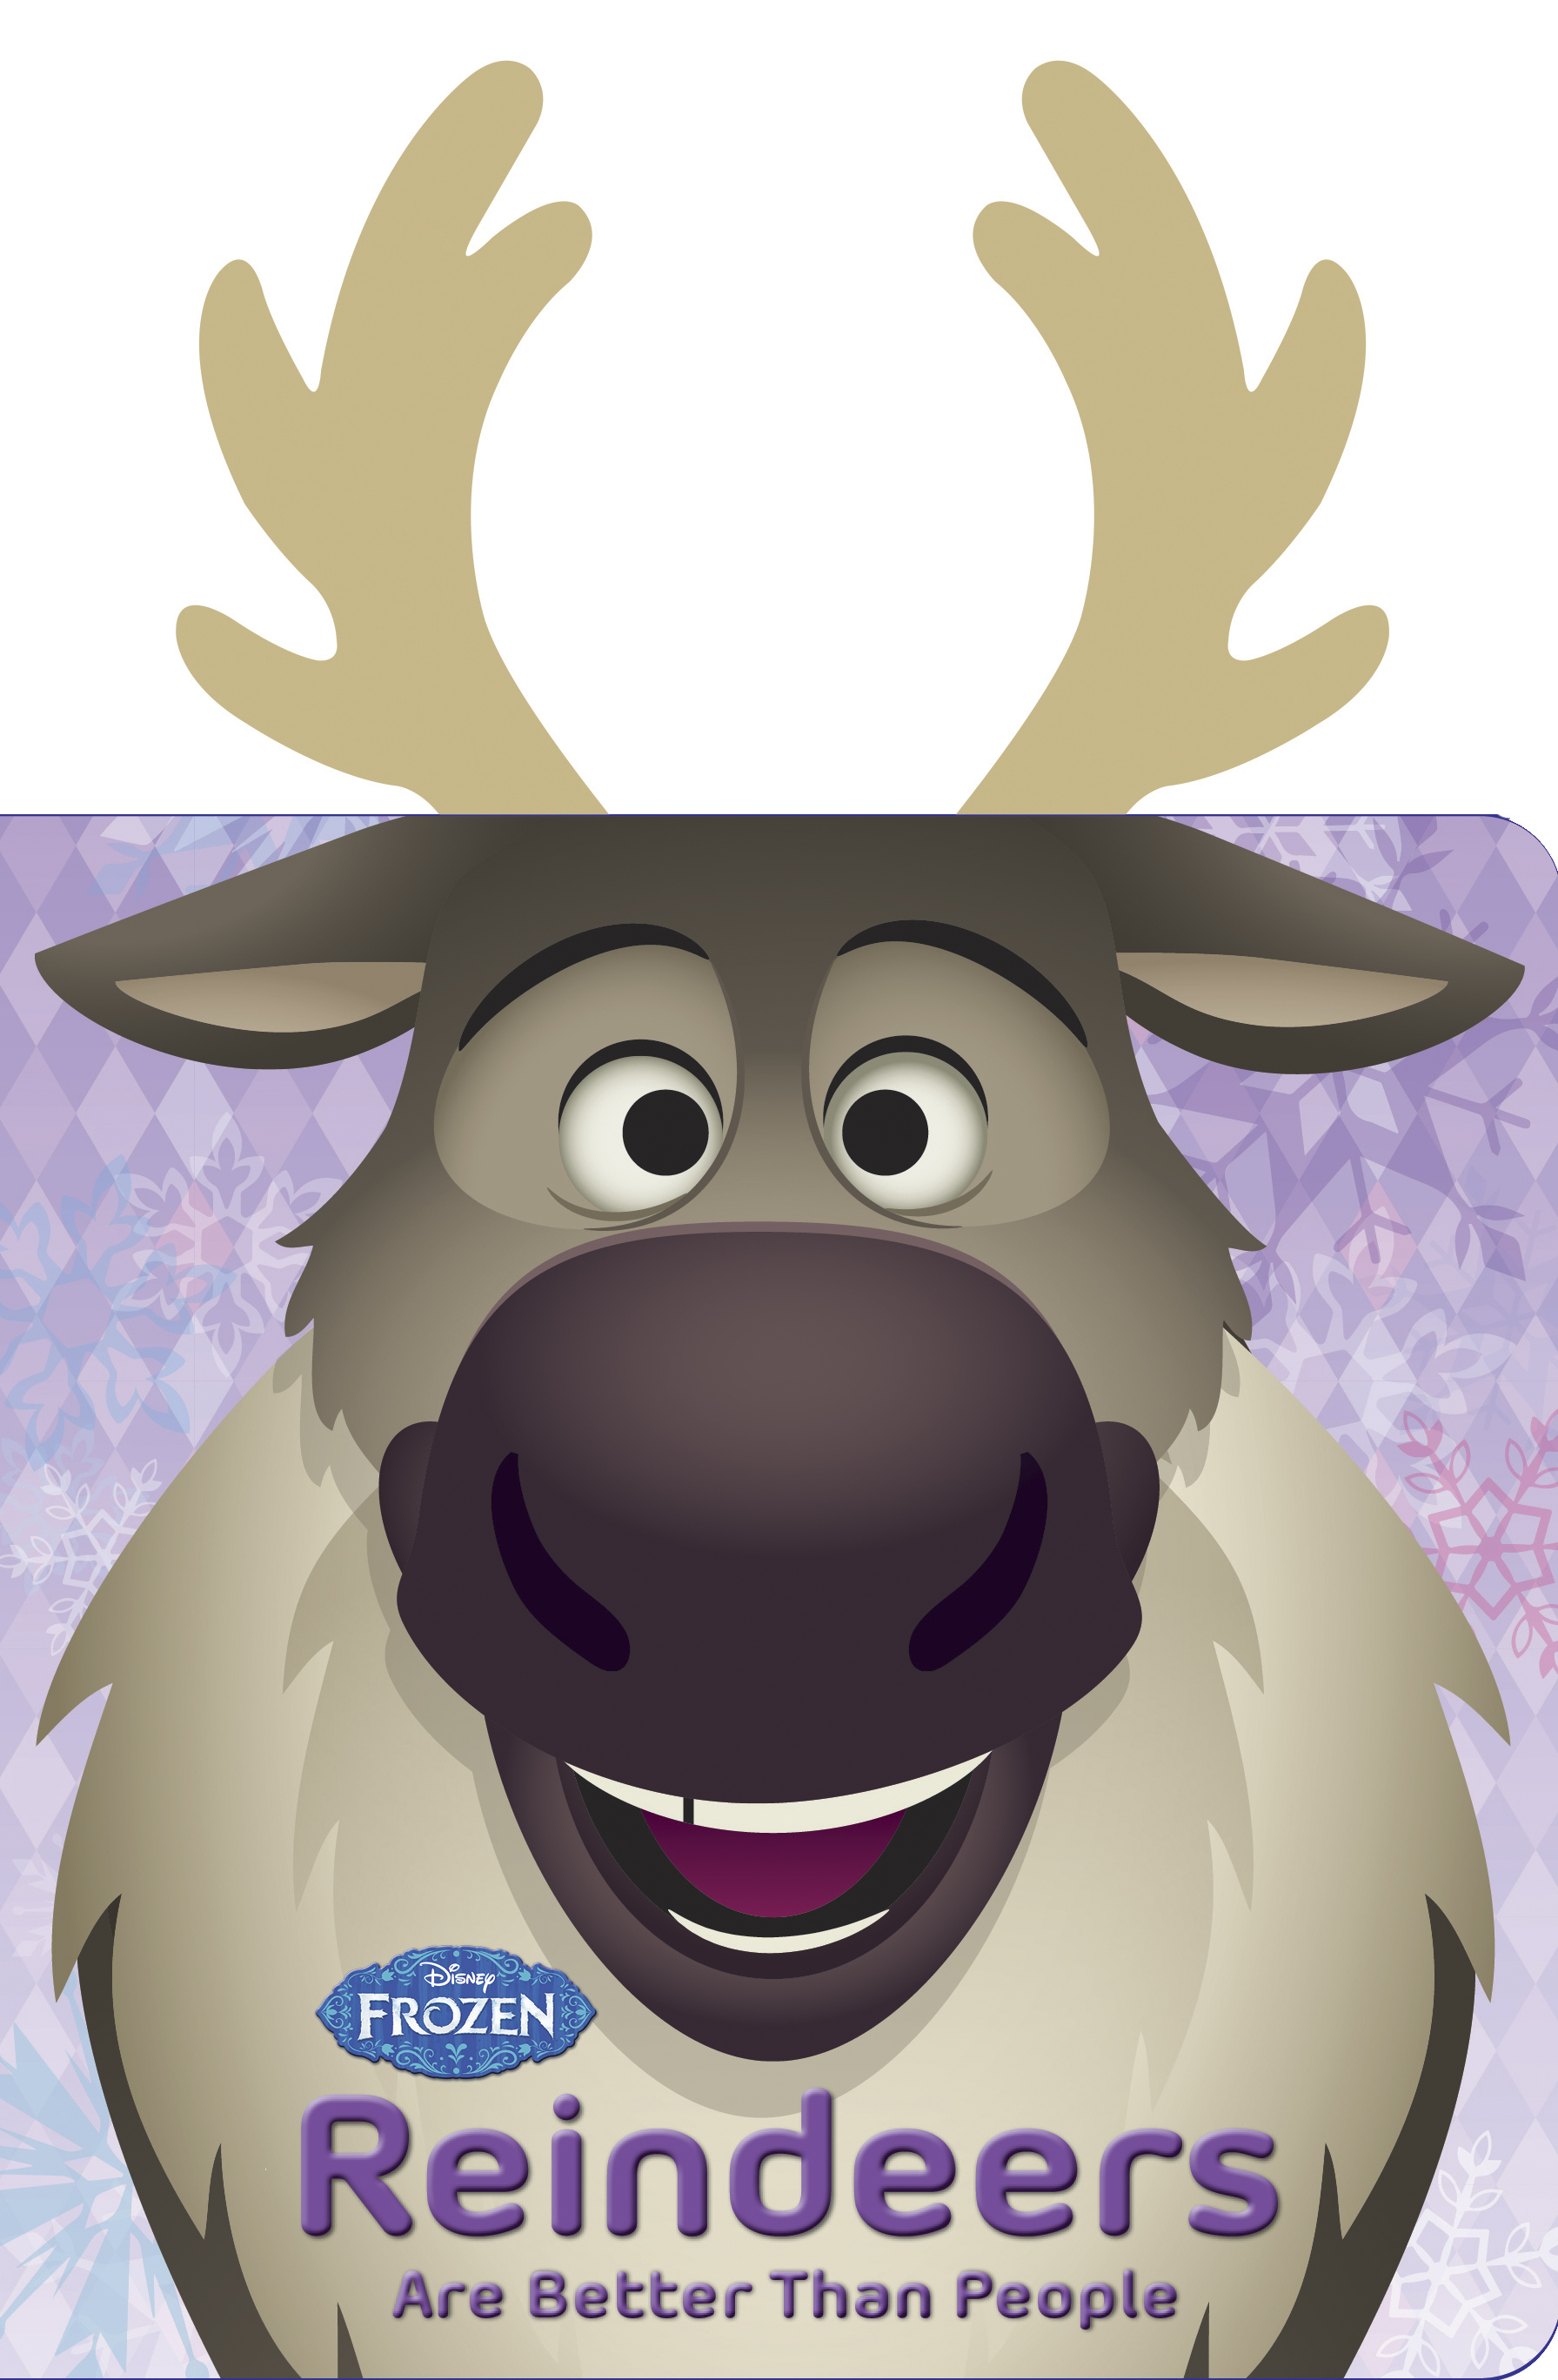 FROZEN: Reindeers are Better than People